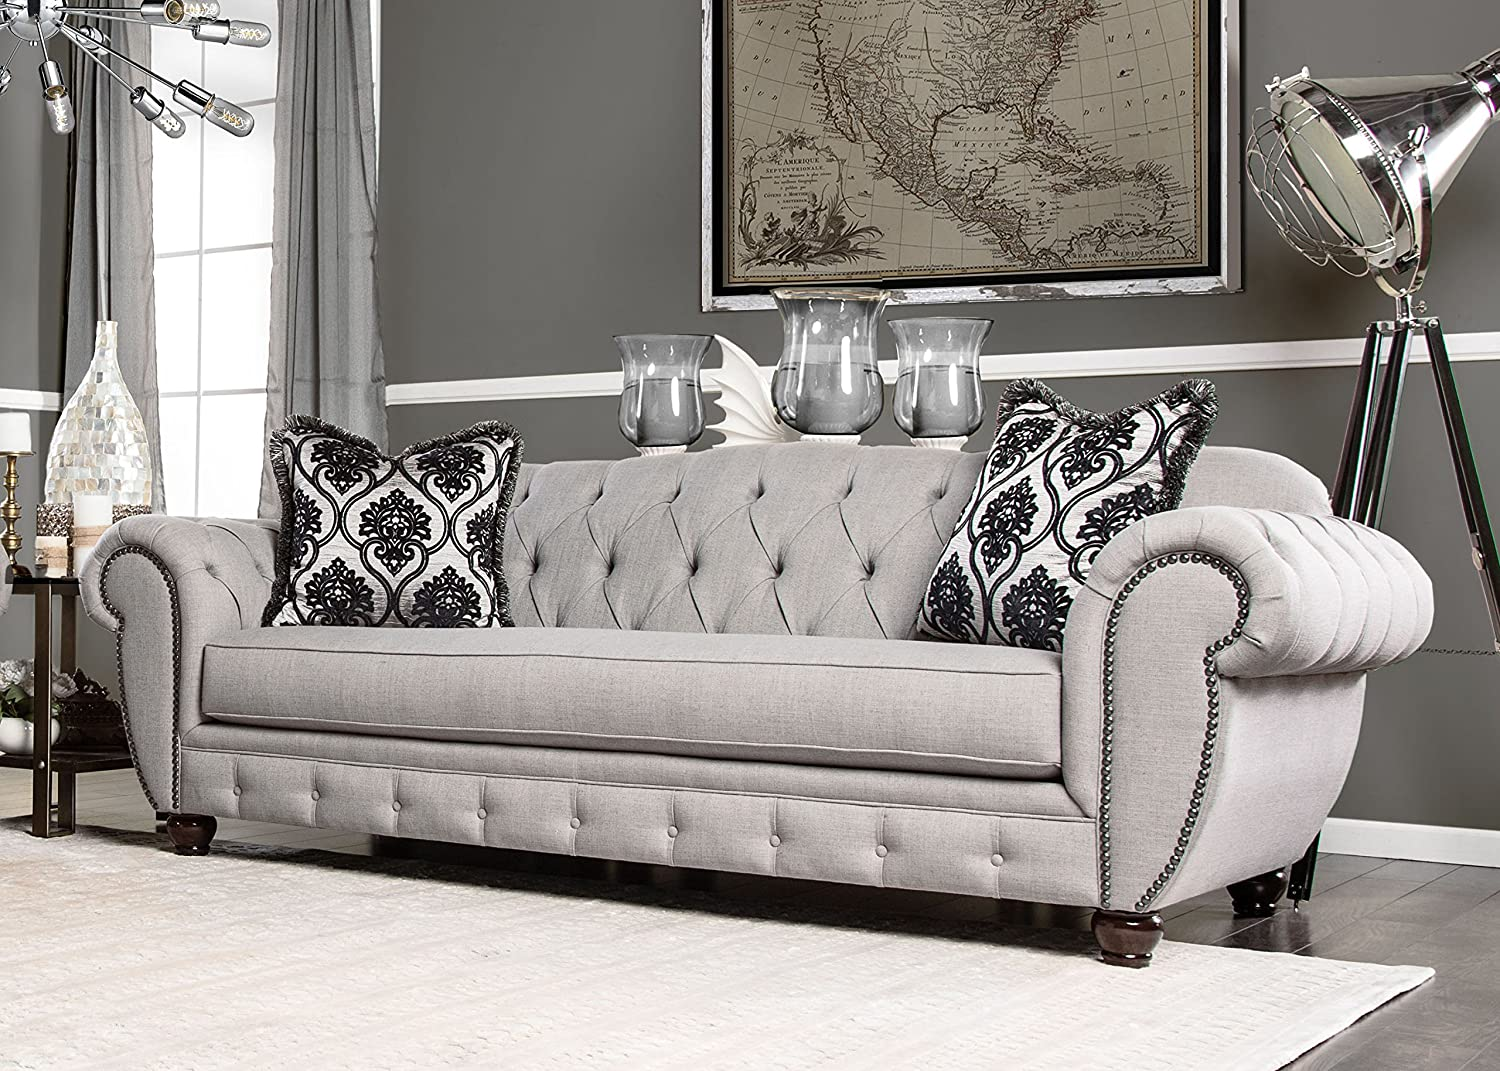 Amazon Com Furniture Of America Bowie Modern Victorian Tufted Sofa